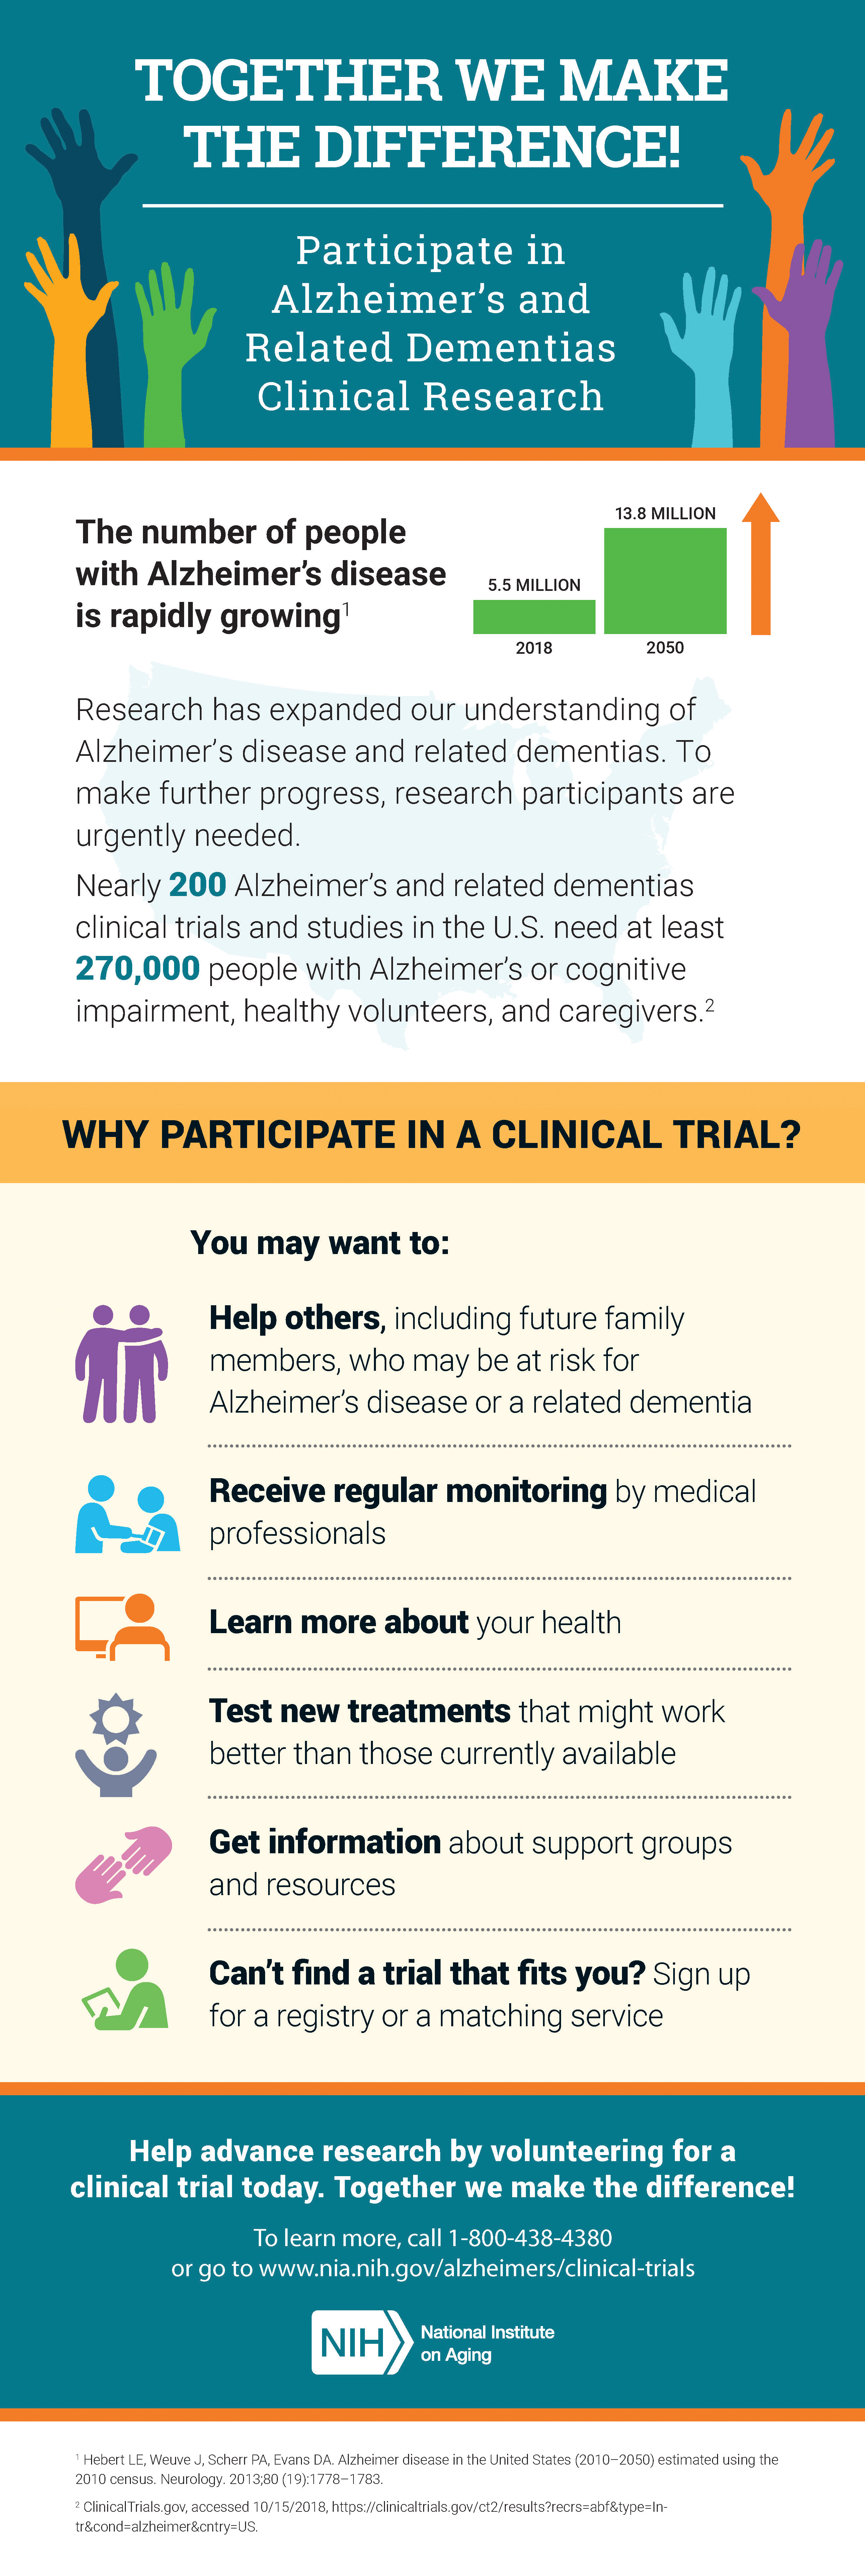 Participate in Alzheimer's research infographic. Full transcript below.